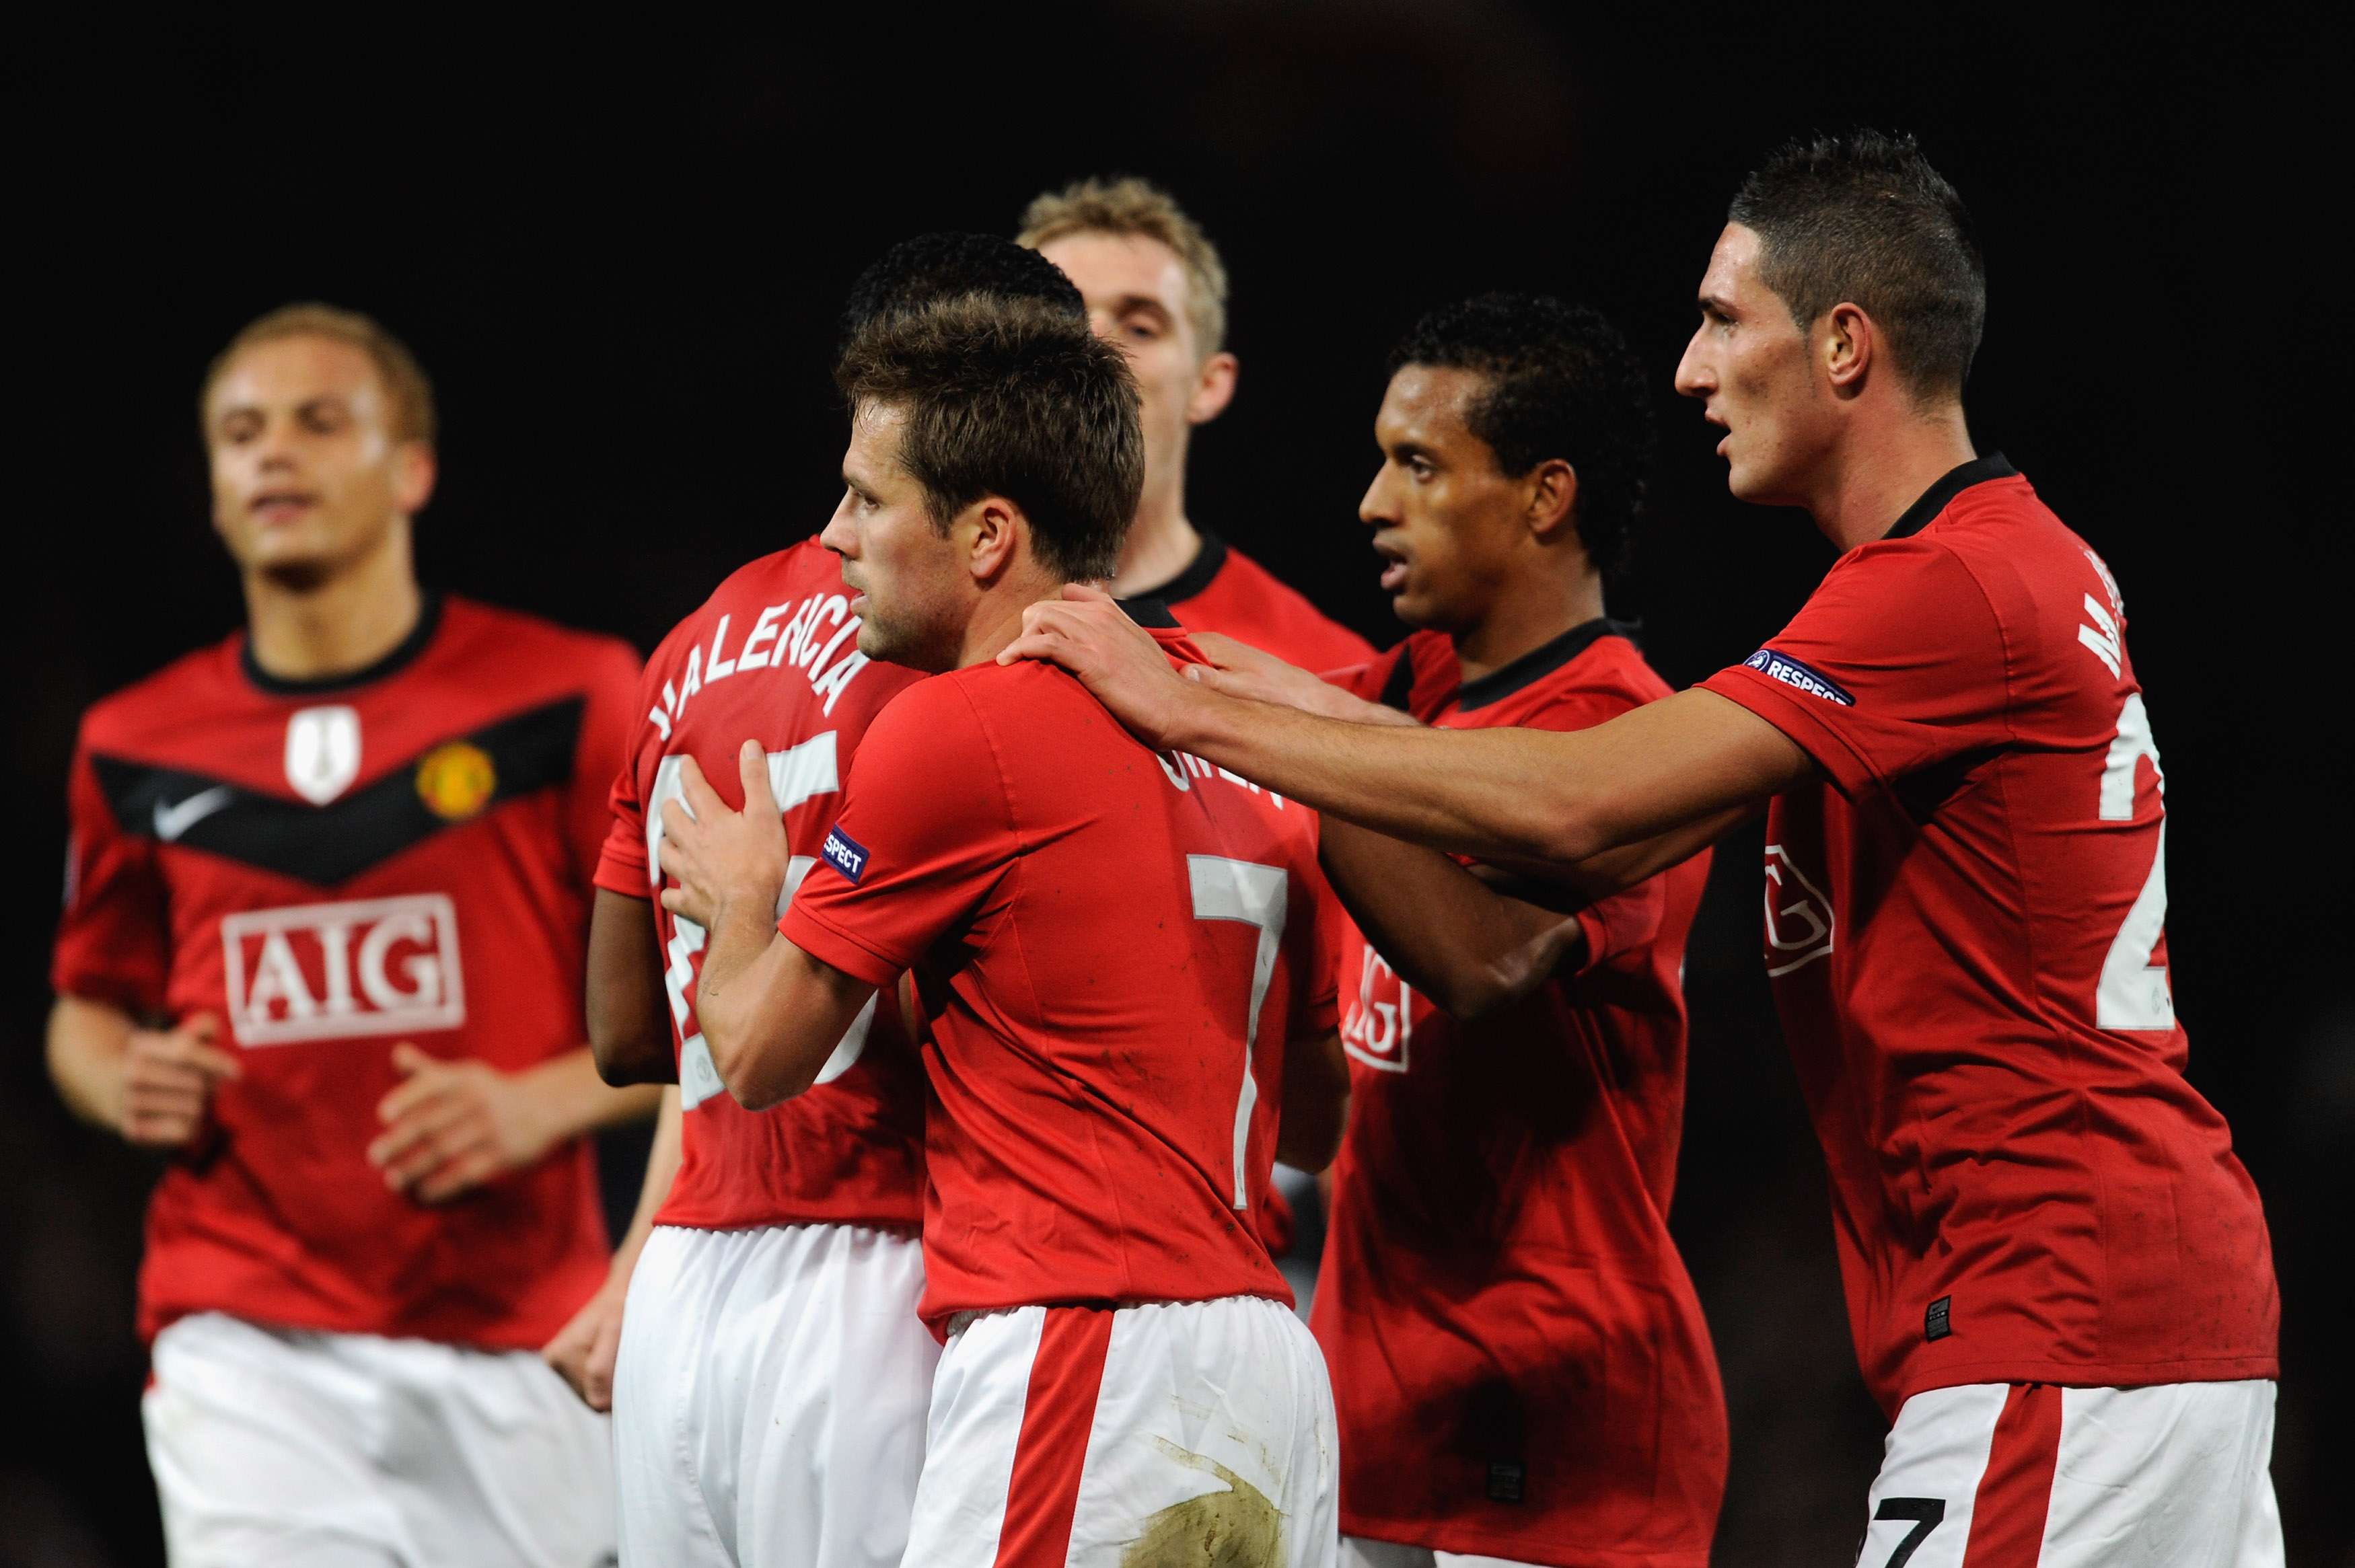 MANCHESTER, ENGLAND - NOVEMBER 03:  Michael Owen of Manchester United is congratulated by his team mates after scoring his team's first goal during the UEFA Champions League Group B match between Manchester United and CSKA Moscow at Old Trafford on Novemb